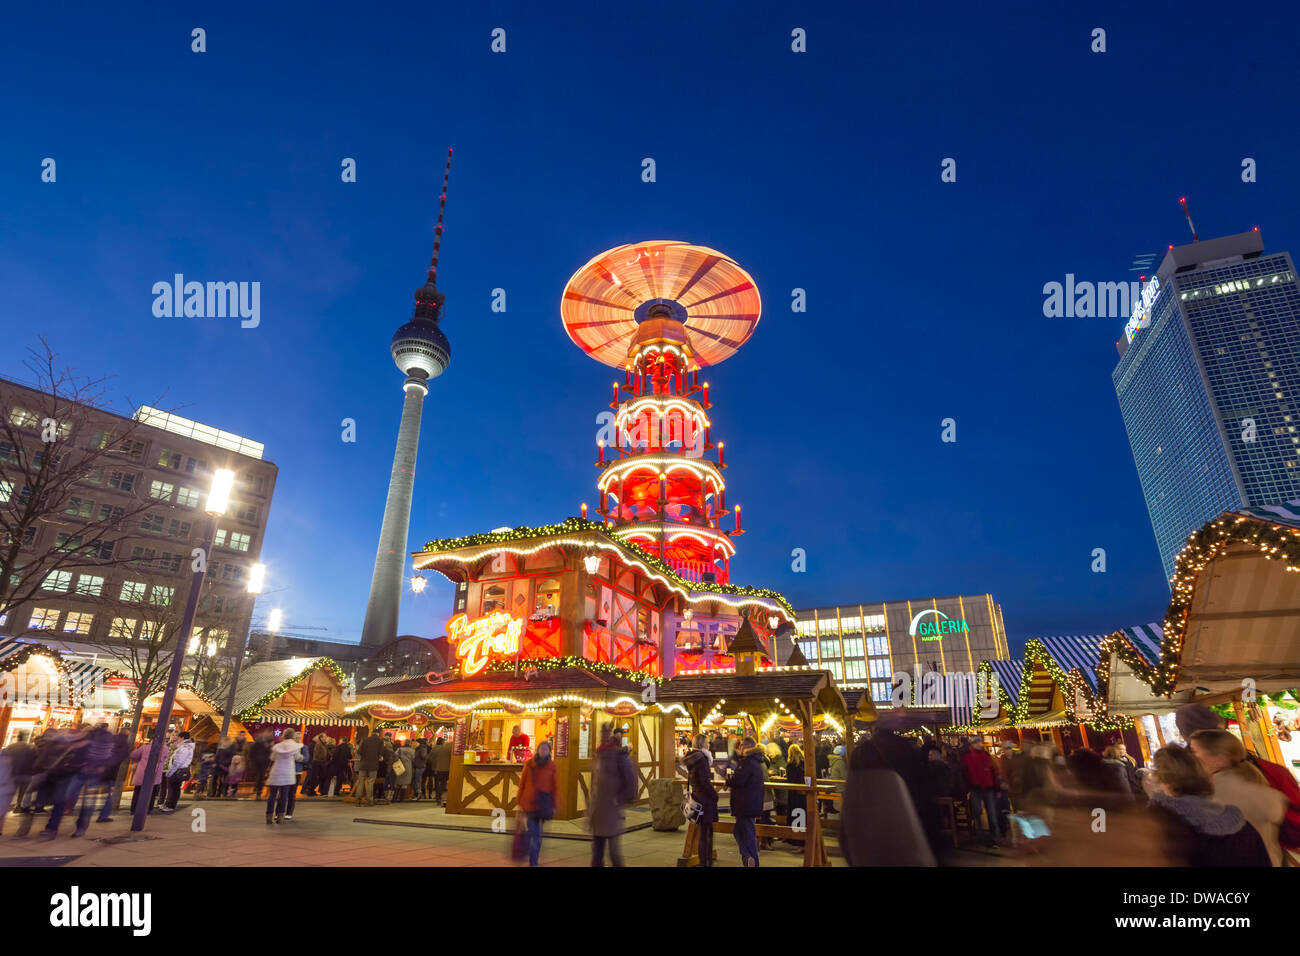 weihnachten markt alexanderplatz fernsehturm berlin. Black Bedroom Furniture Sets. Home Design Ideas